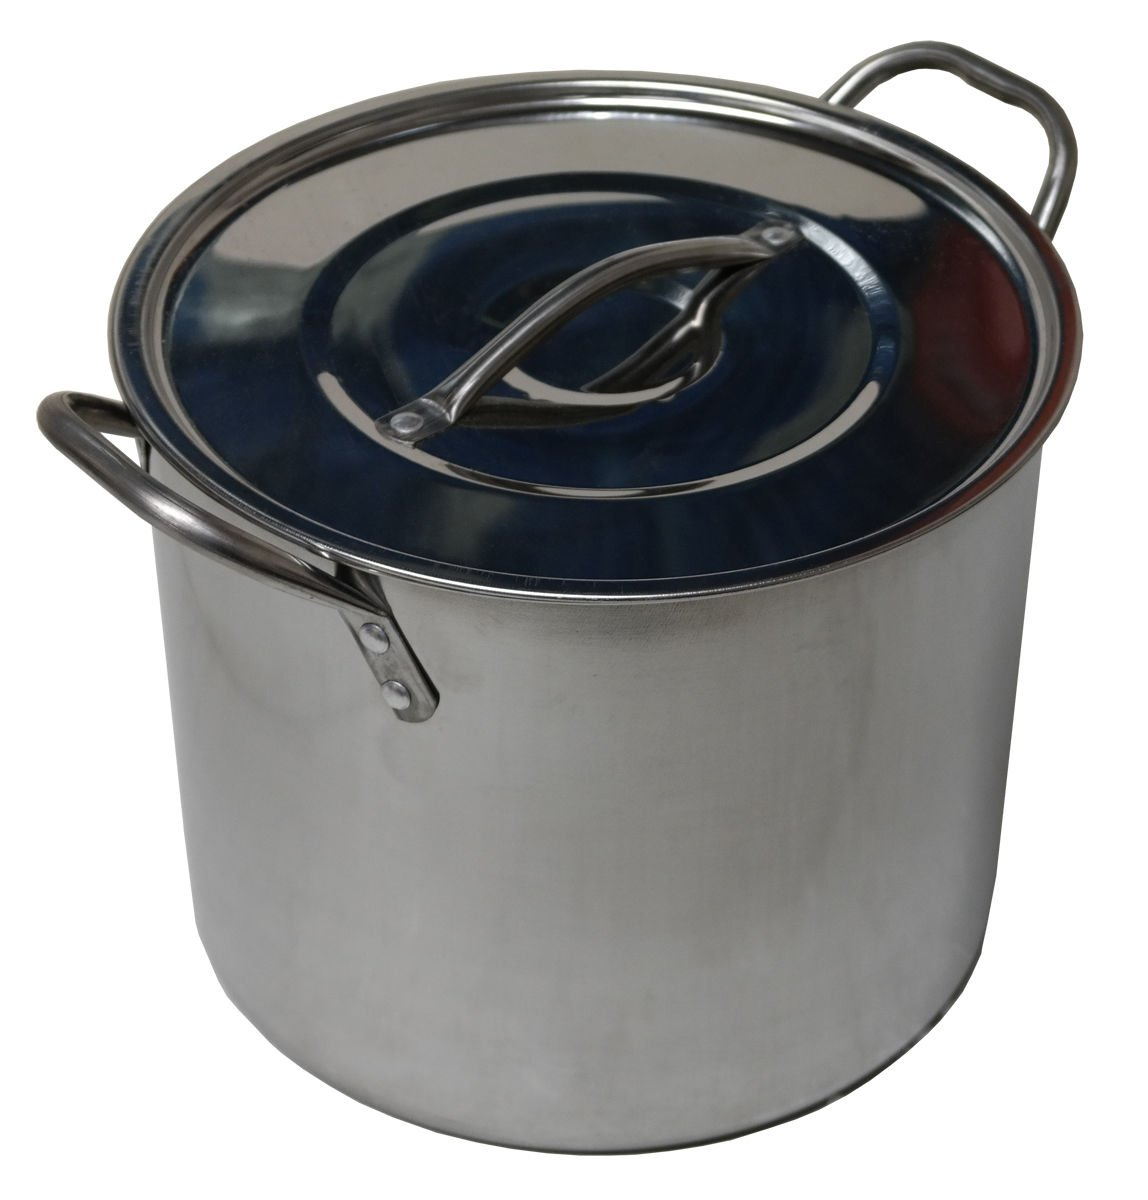 6.2L Stainless Steel Stock Pots Cooking Casserole Boiling Pot Deep Catering Stockpot Marko